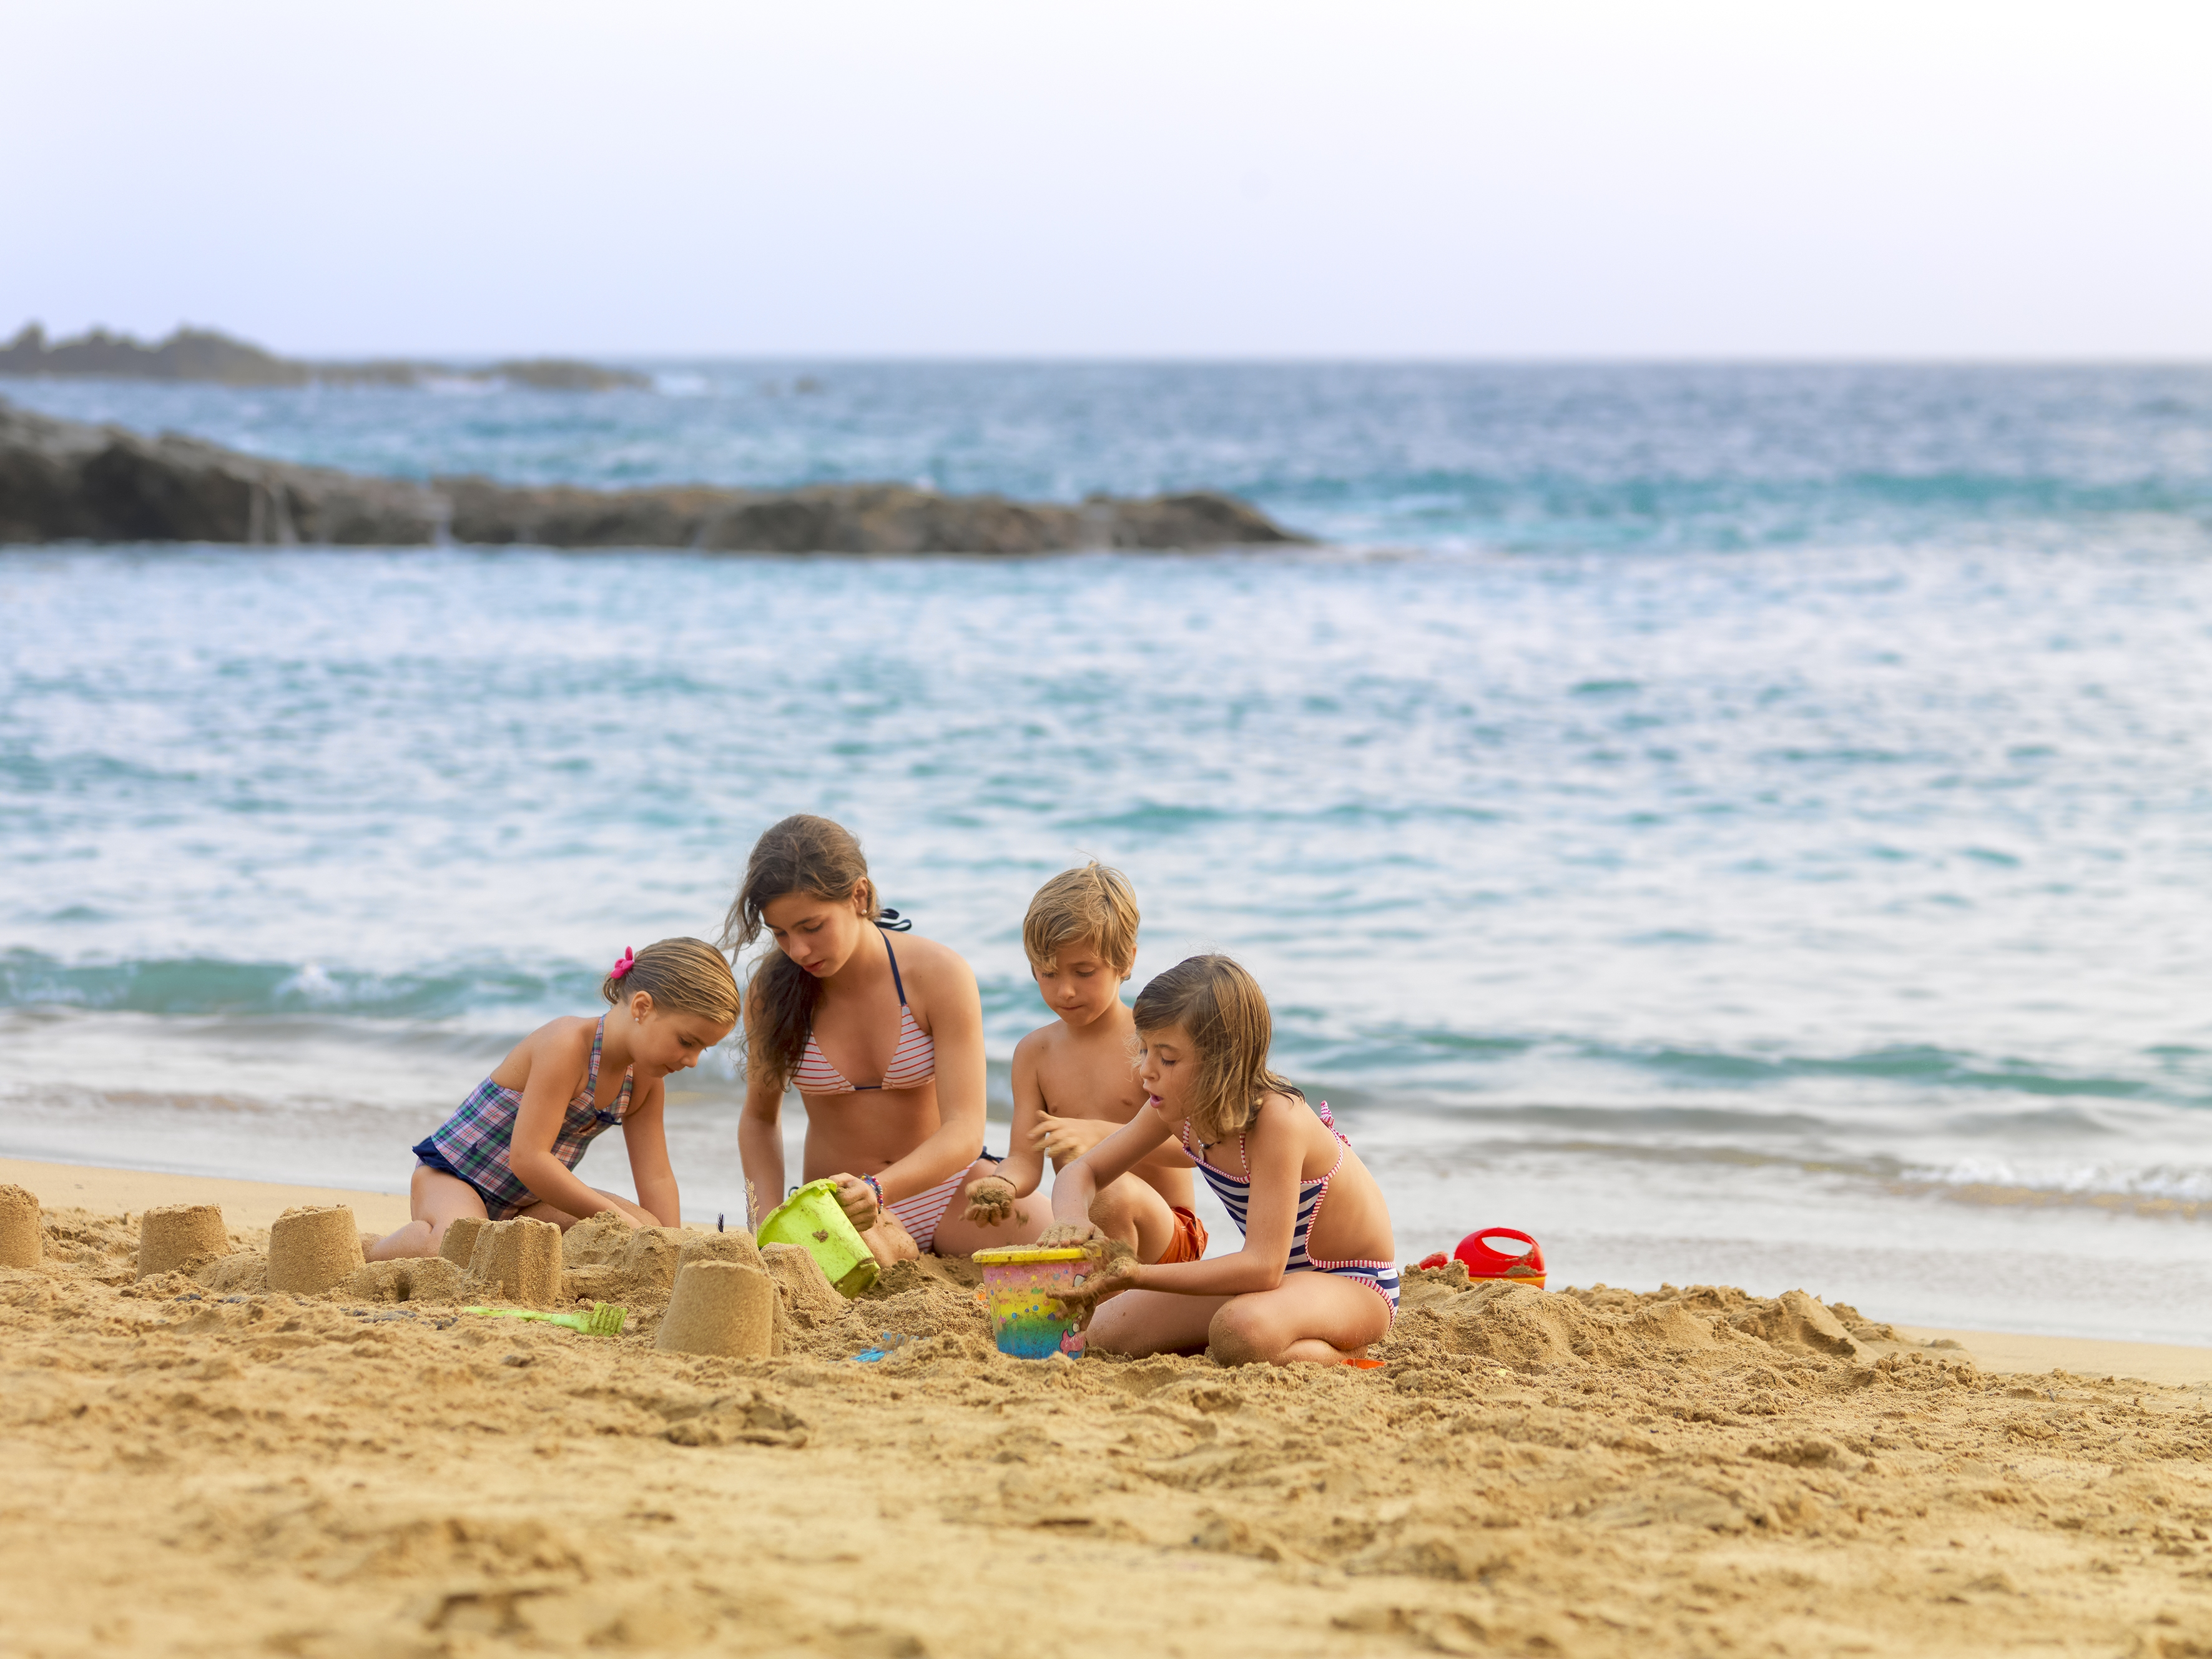 Kids on a family beach in Tenerife